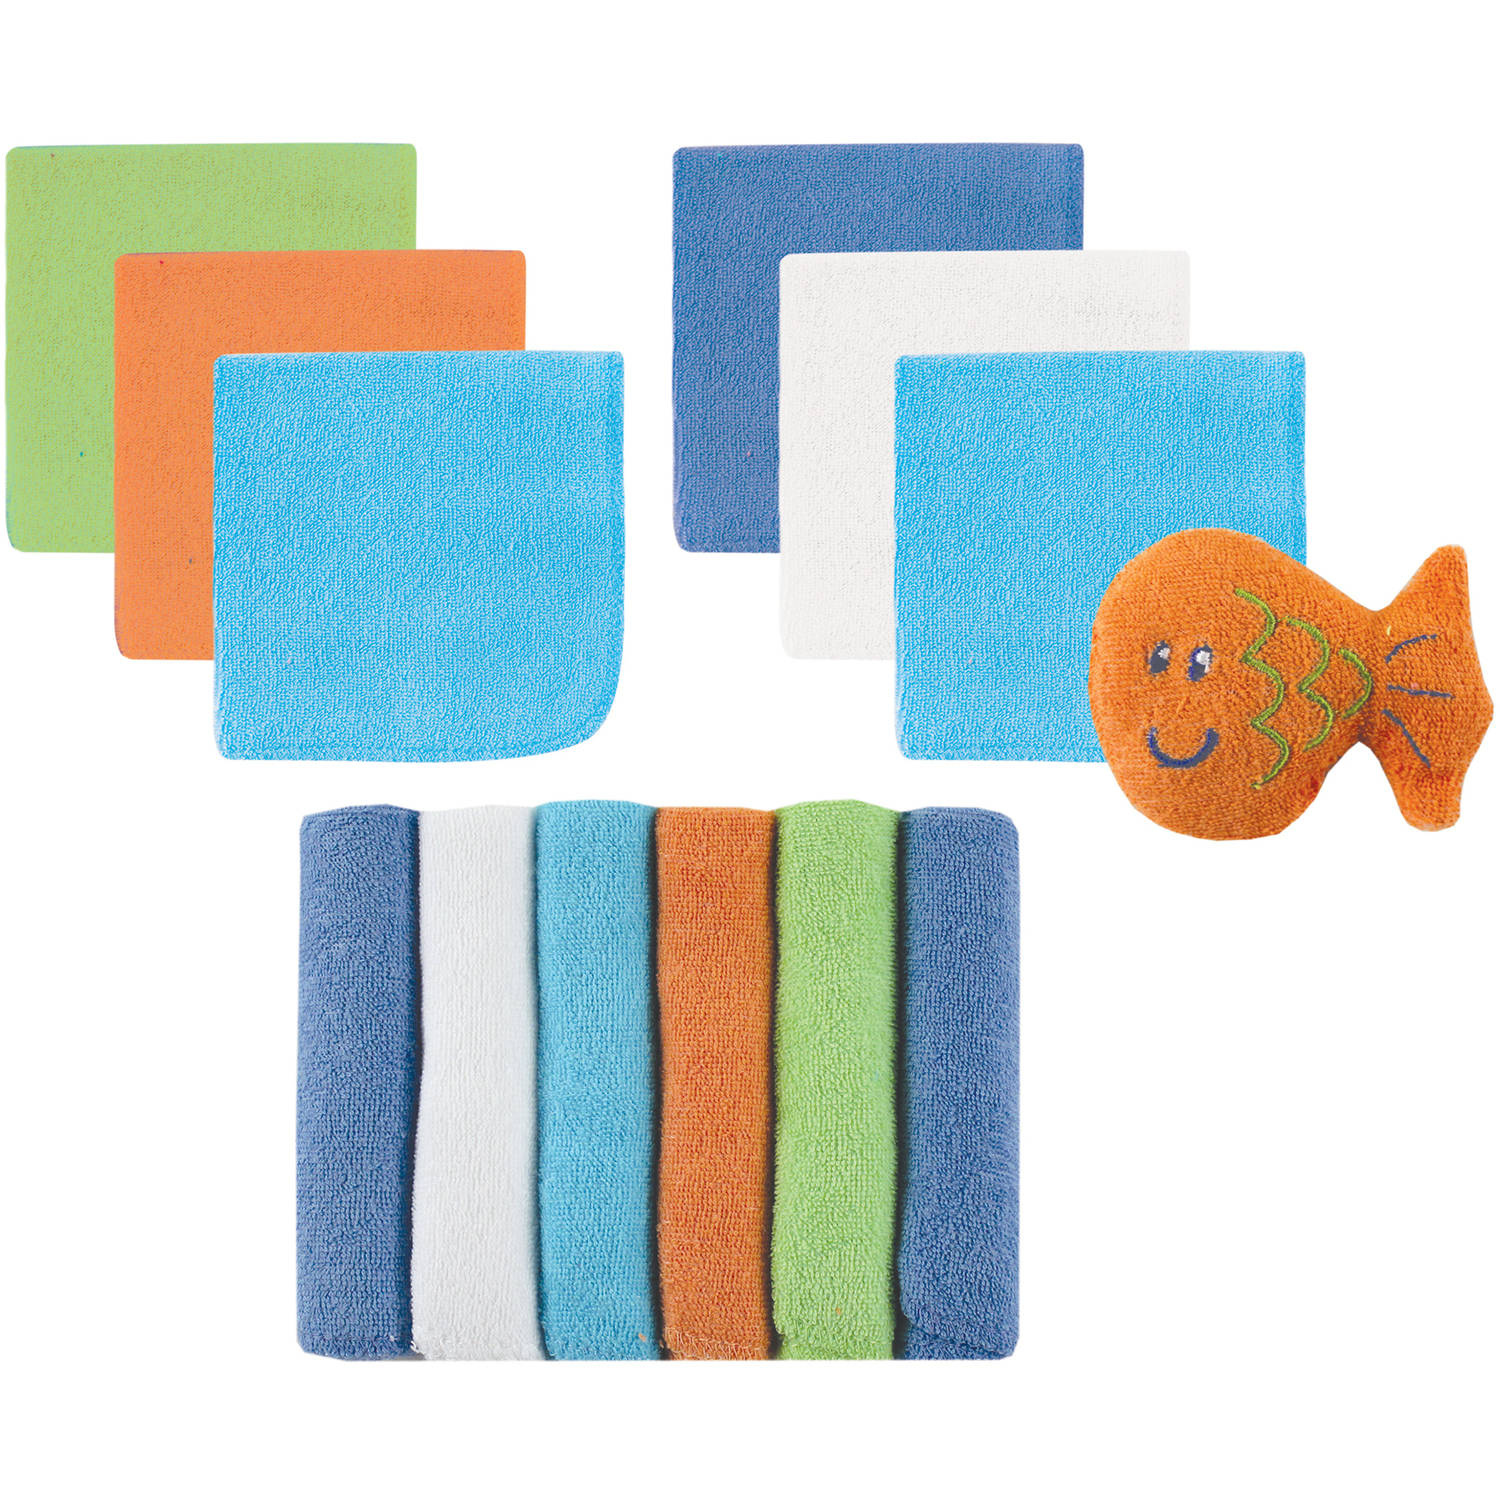 Luvable Friends Baby Washcloths, Blue, 12 Pack with Bath Toy